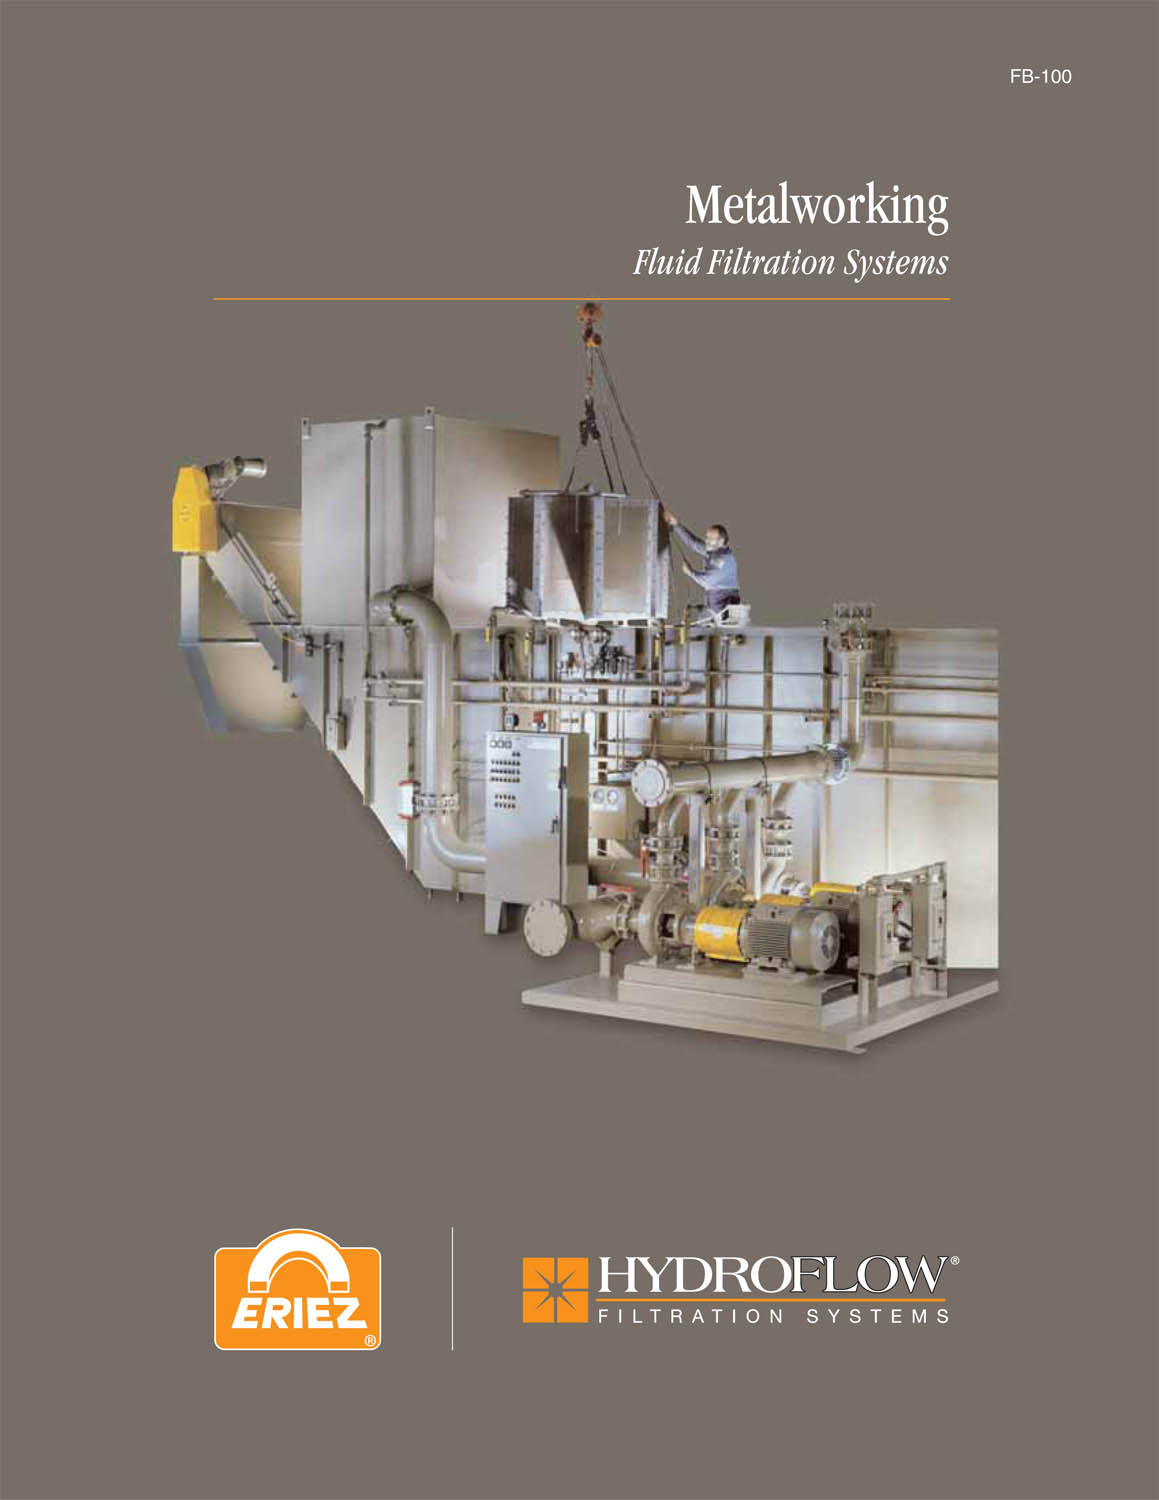 Free Metalworking Fluid Filtration Brochure Available From